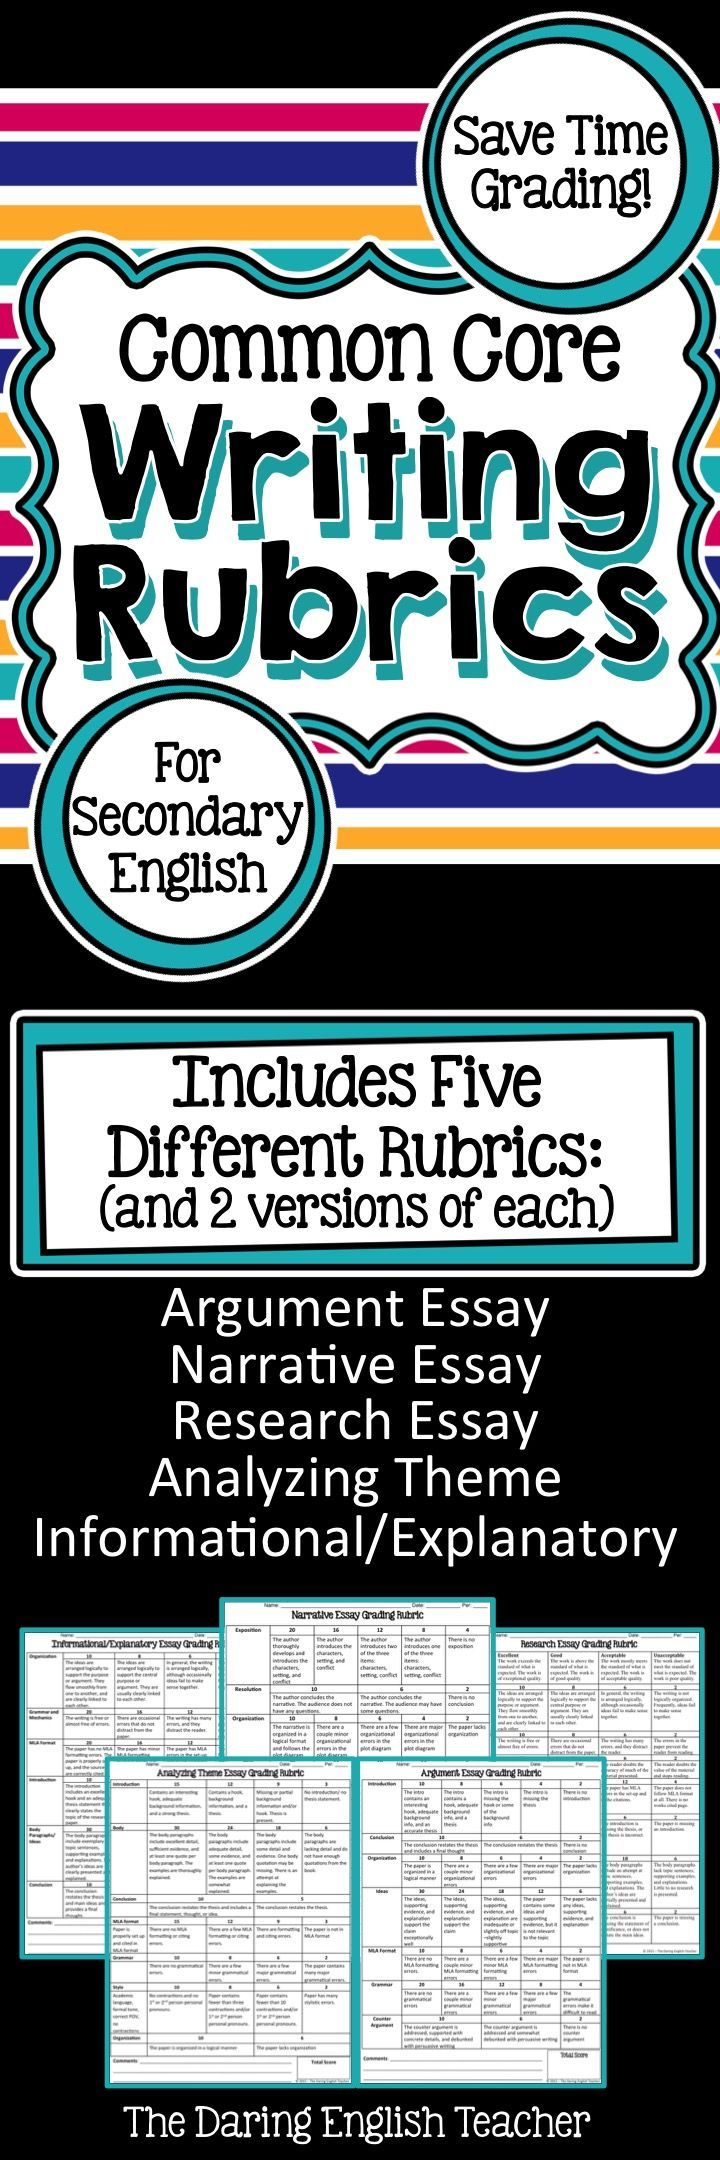 essay about teaching writing How to write an introduction for an essay while the essay is the most common type of paper assigned to students, this doesn't make it any easier to write.